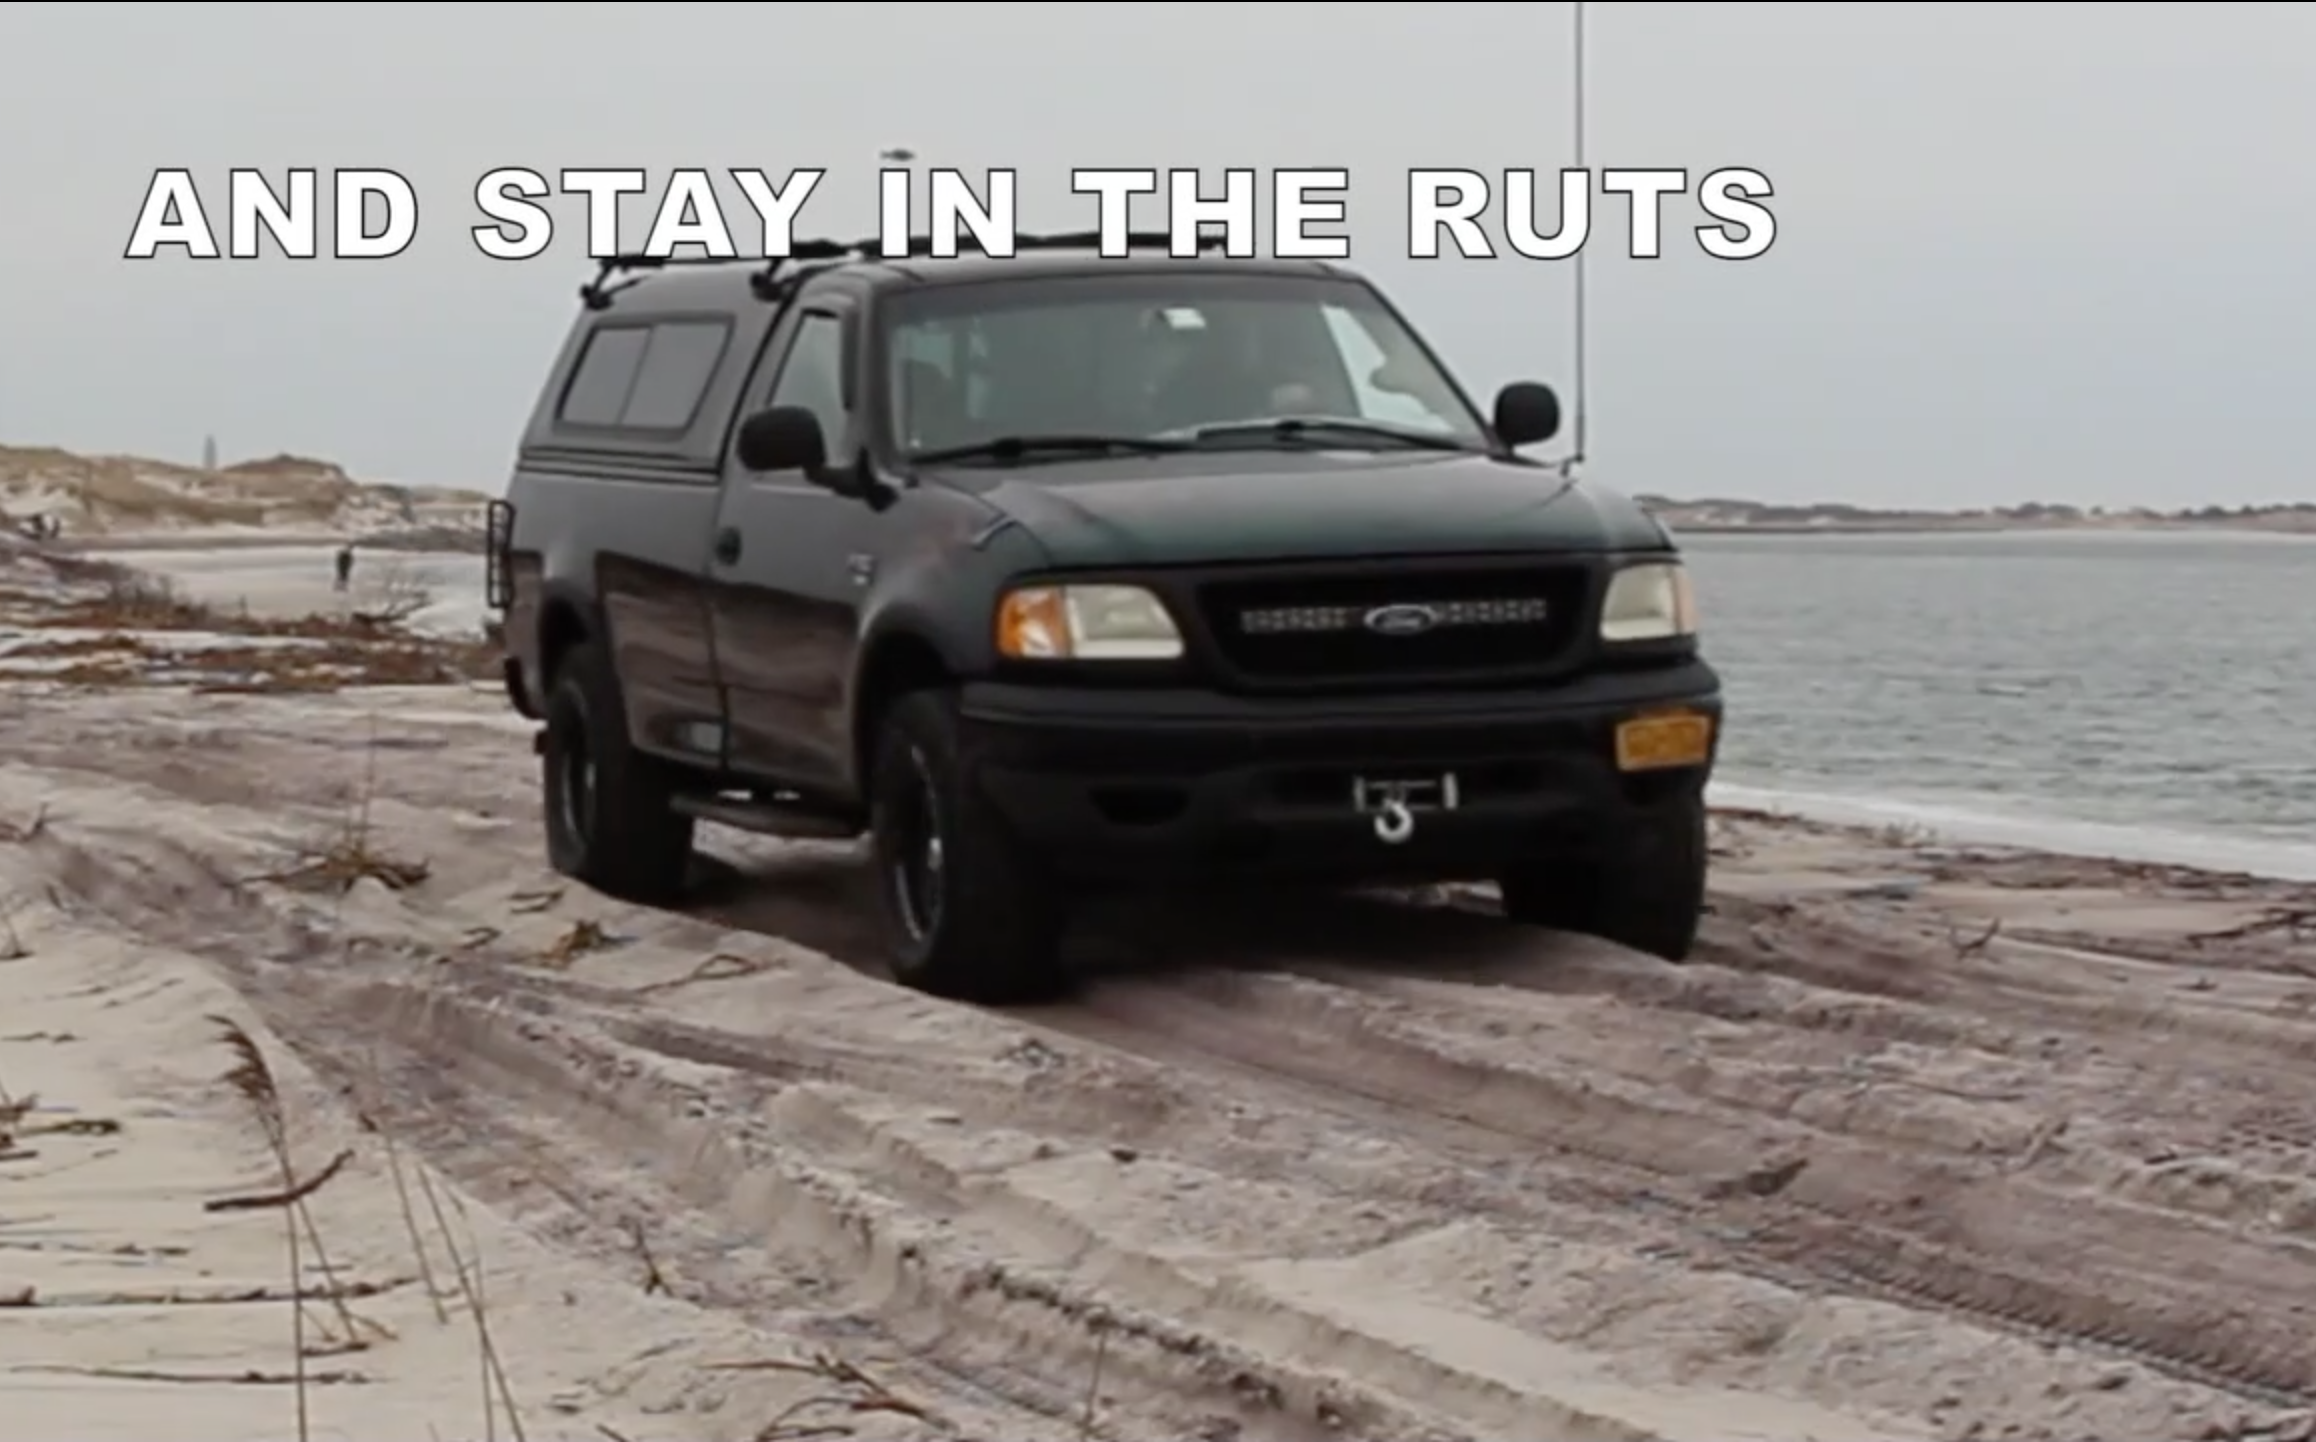 Beach Driving 101: How to Get to Your Surf Fishing Spot Without Getting Stuck